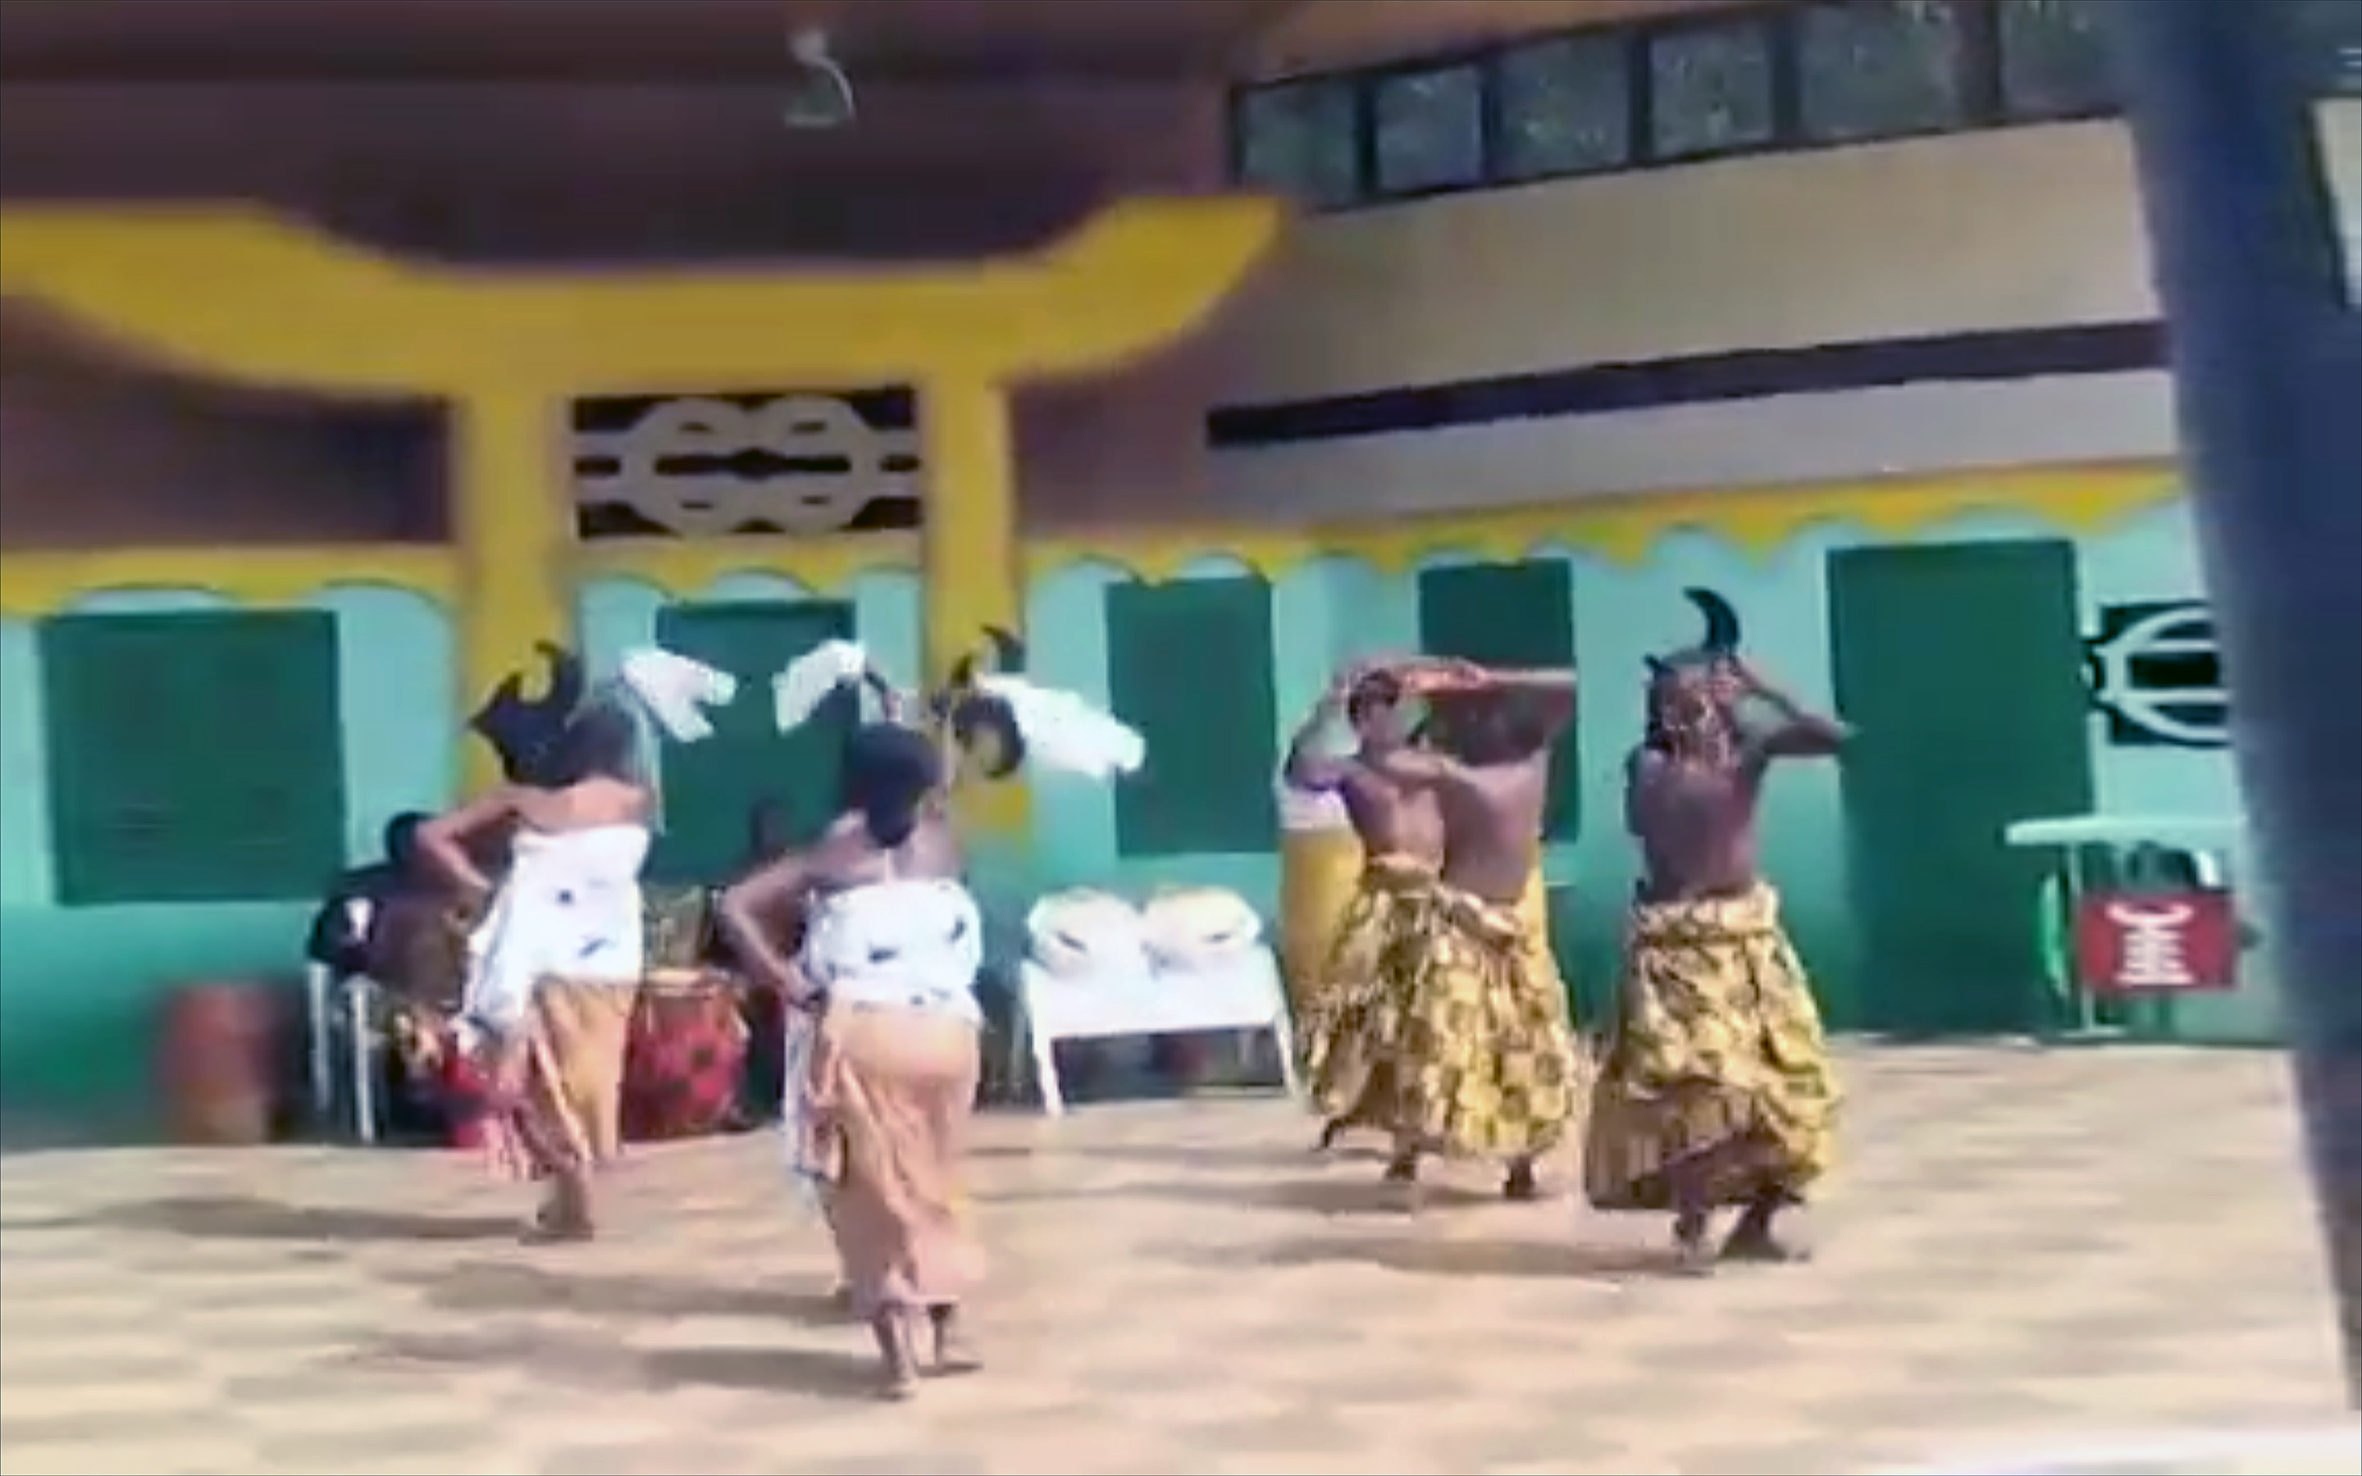 3.ABUKO / Ghana - ABUKO is a traditional Ashanti dance rhythm from Ghana. It is played during traditional healing ceremonies to help excite and energise okomfo, traditional priest, in preparation for their possession by the gods.